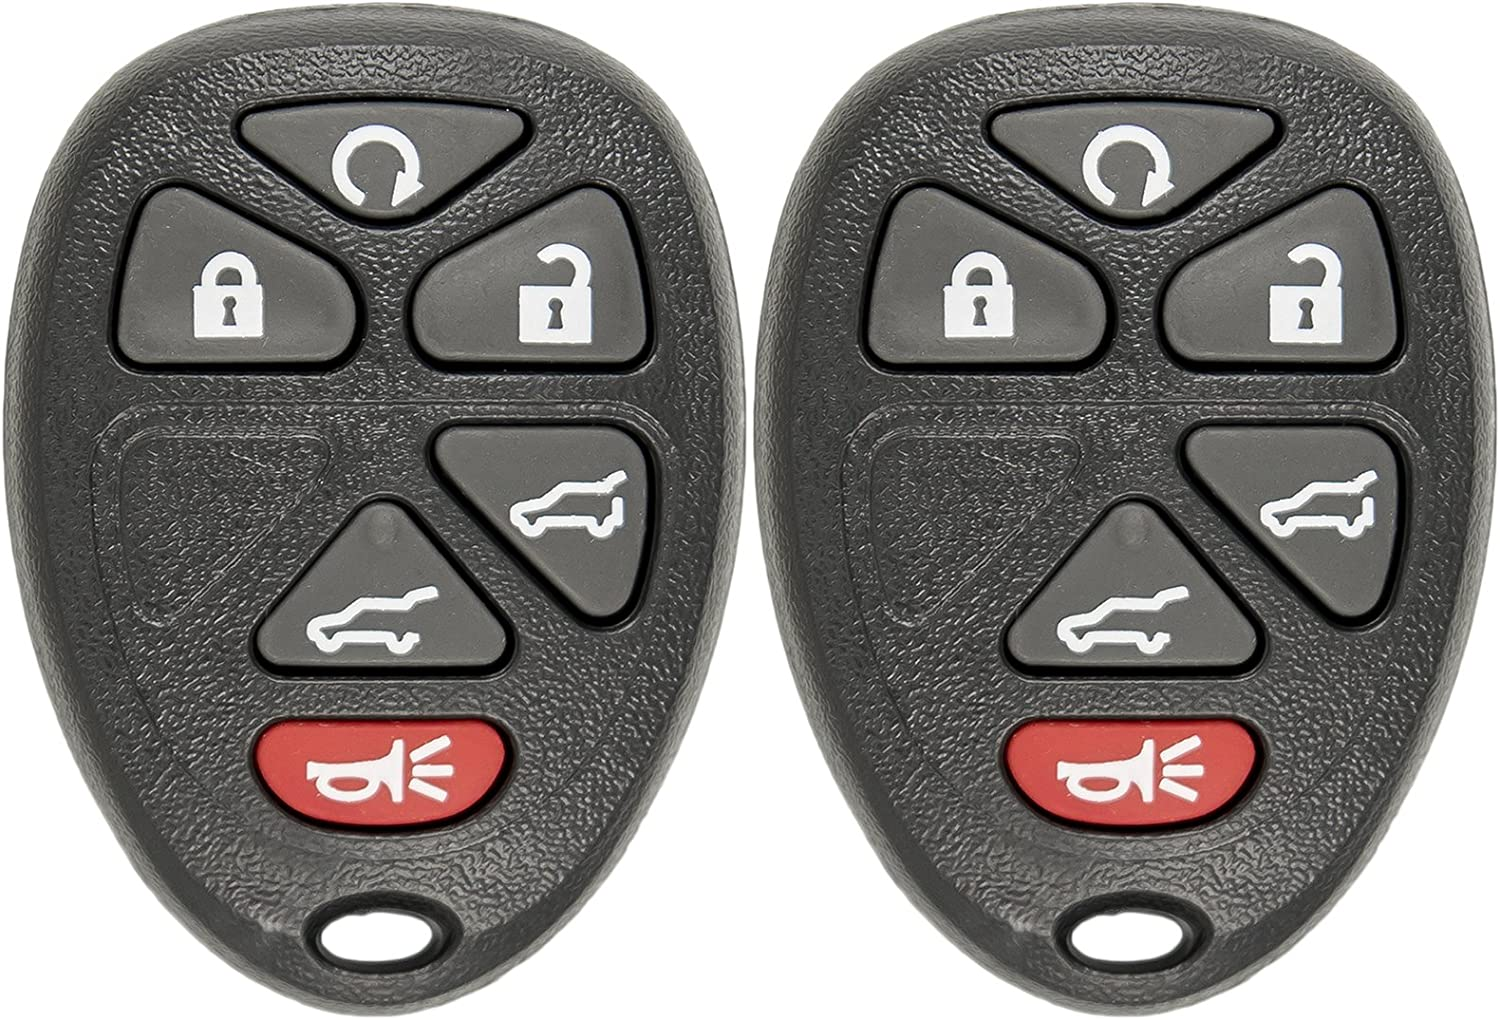 KeylessOption Keyless Entry Remote Control Car Key Fob Replacement for 15913427 with Key Pack of 2